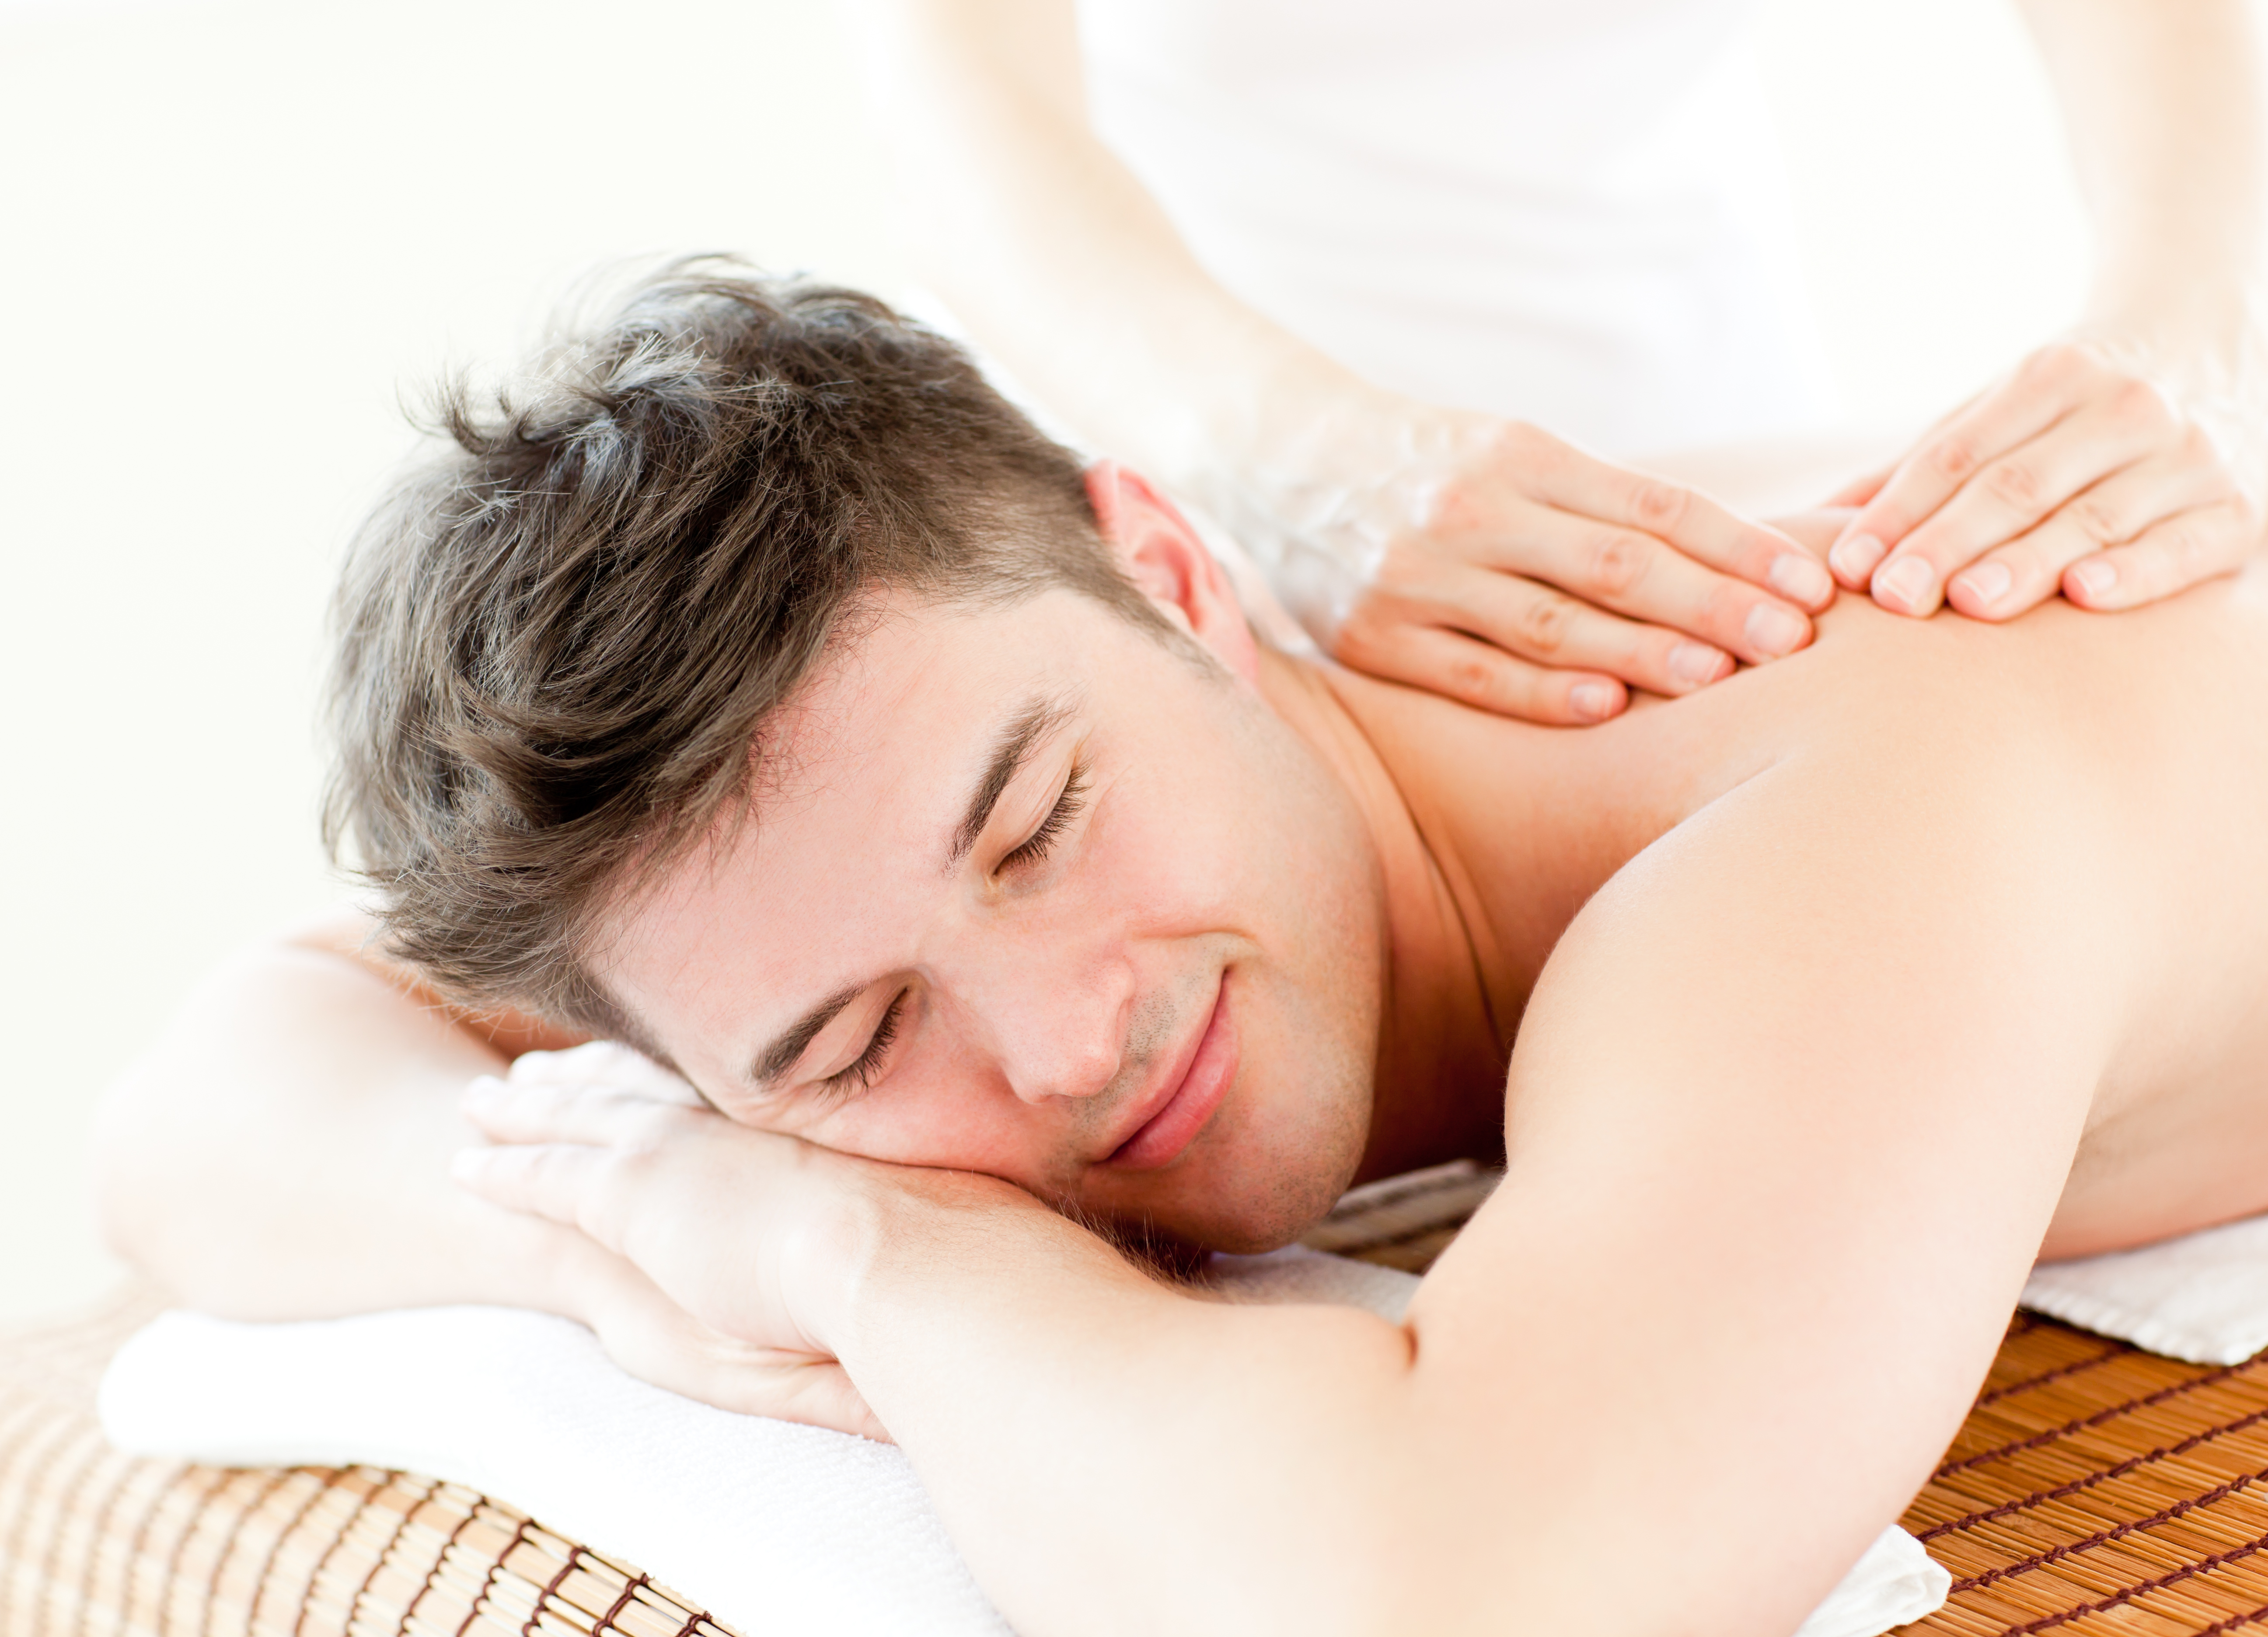 Relaxed young man receiving a back massage in a spa center